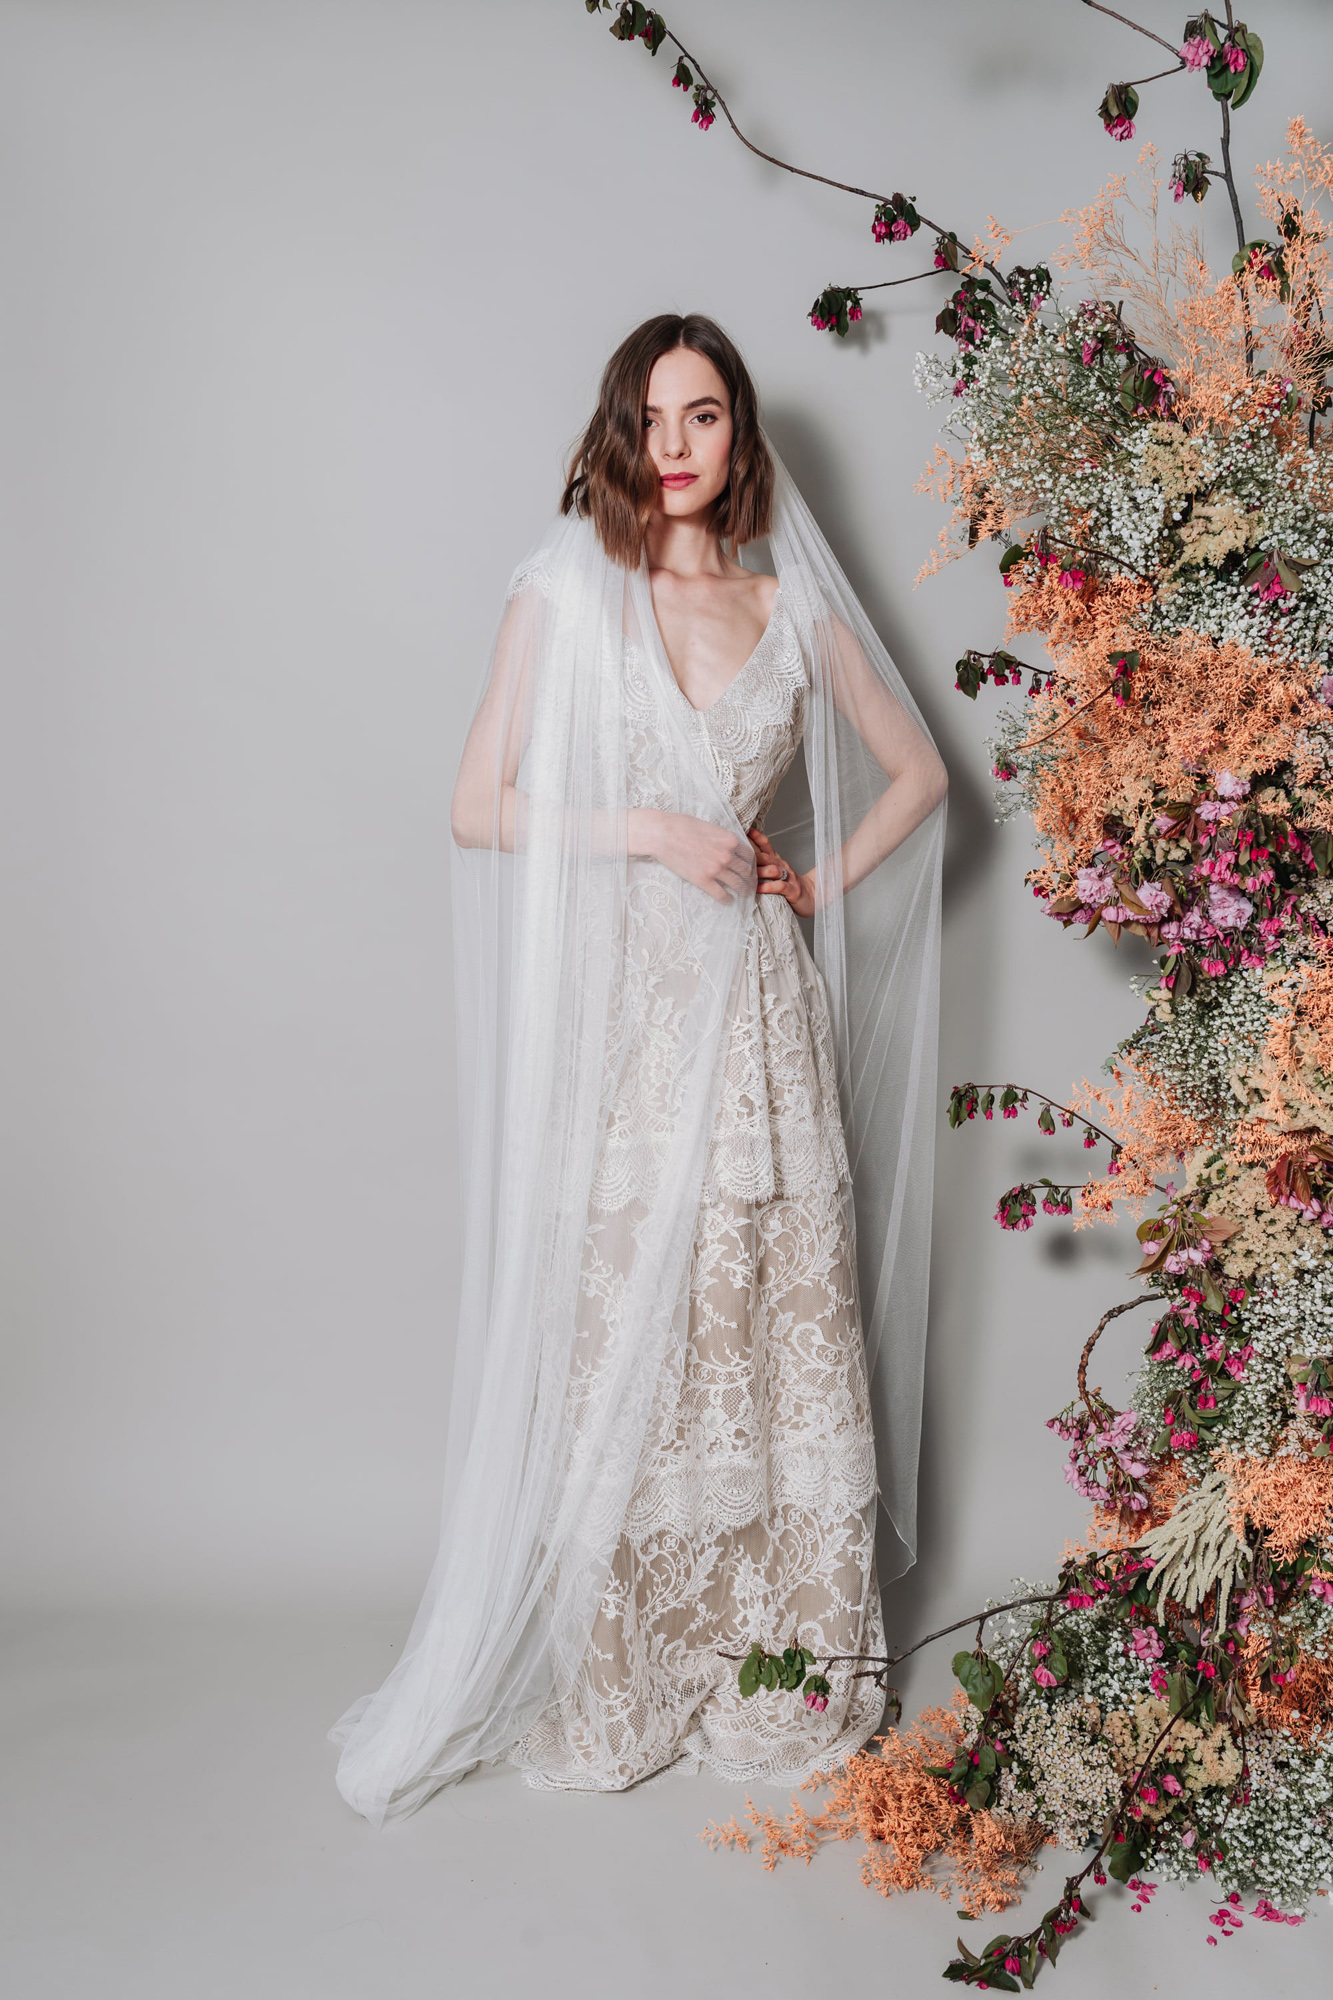 Kate-Beaumont-Sheffield-Wild-Lupin-Bohemian-Lace-Wedding-Gown-Tiered-Skirt-16.jpg